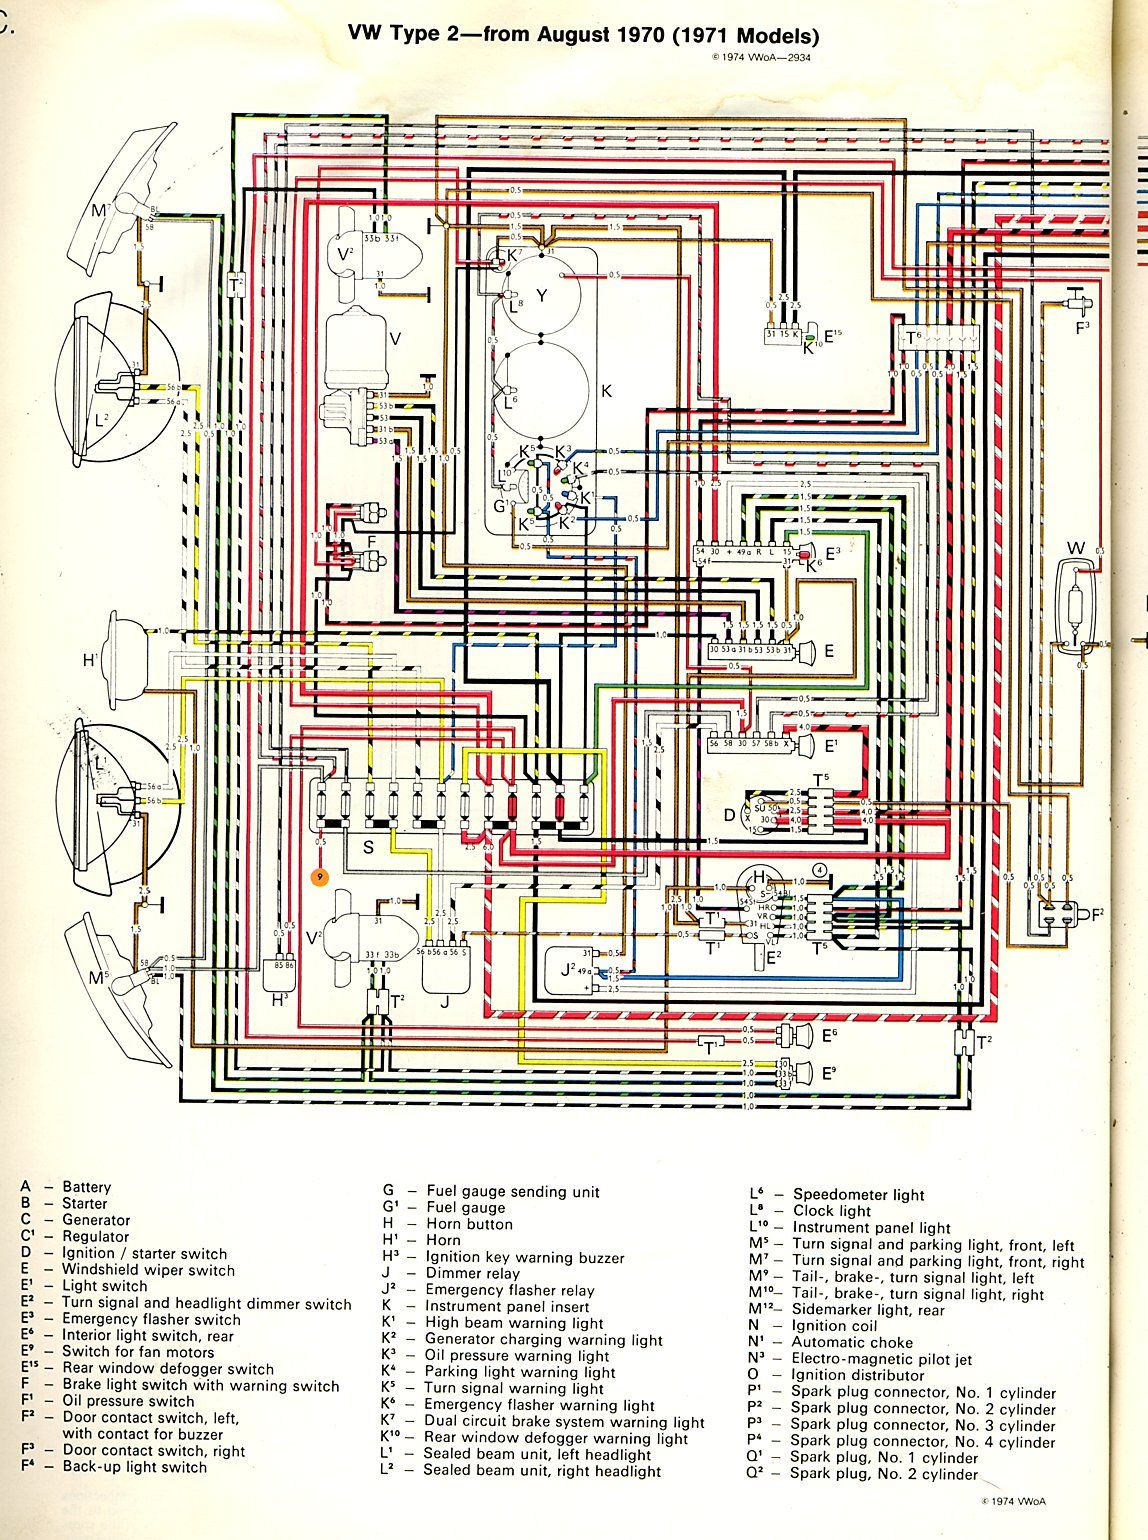 26730f3f6ceb3f1e1b50646c57249616 1971 bus wiring diagram thegoldenbug com stuff to try 1973 Super Beetle Wiring Diagram at reclaimingppi.co